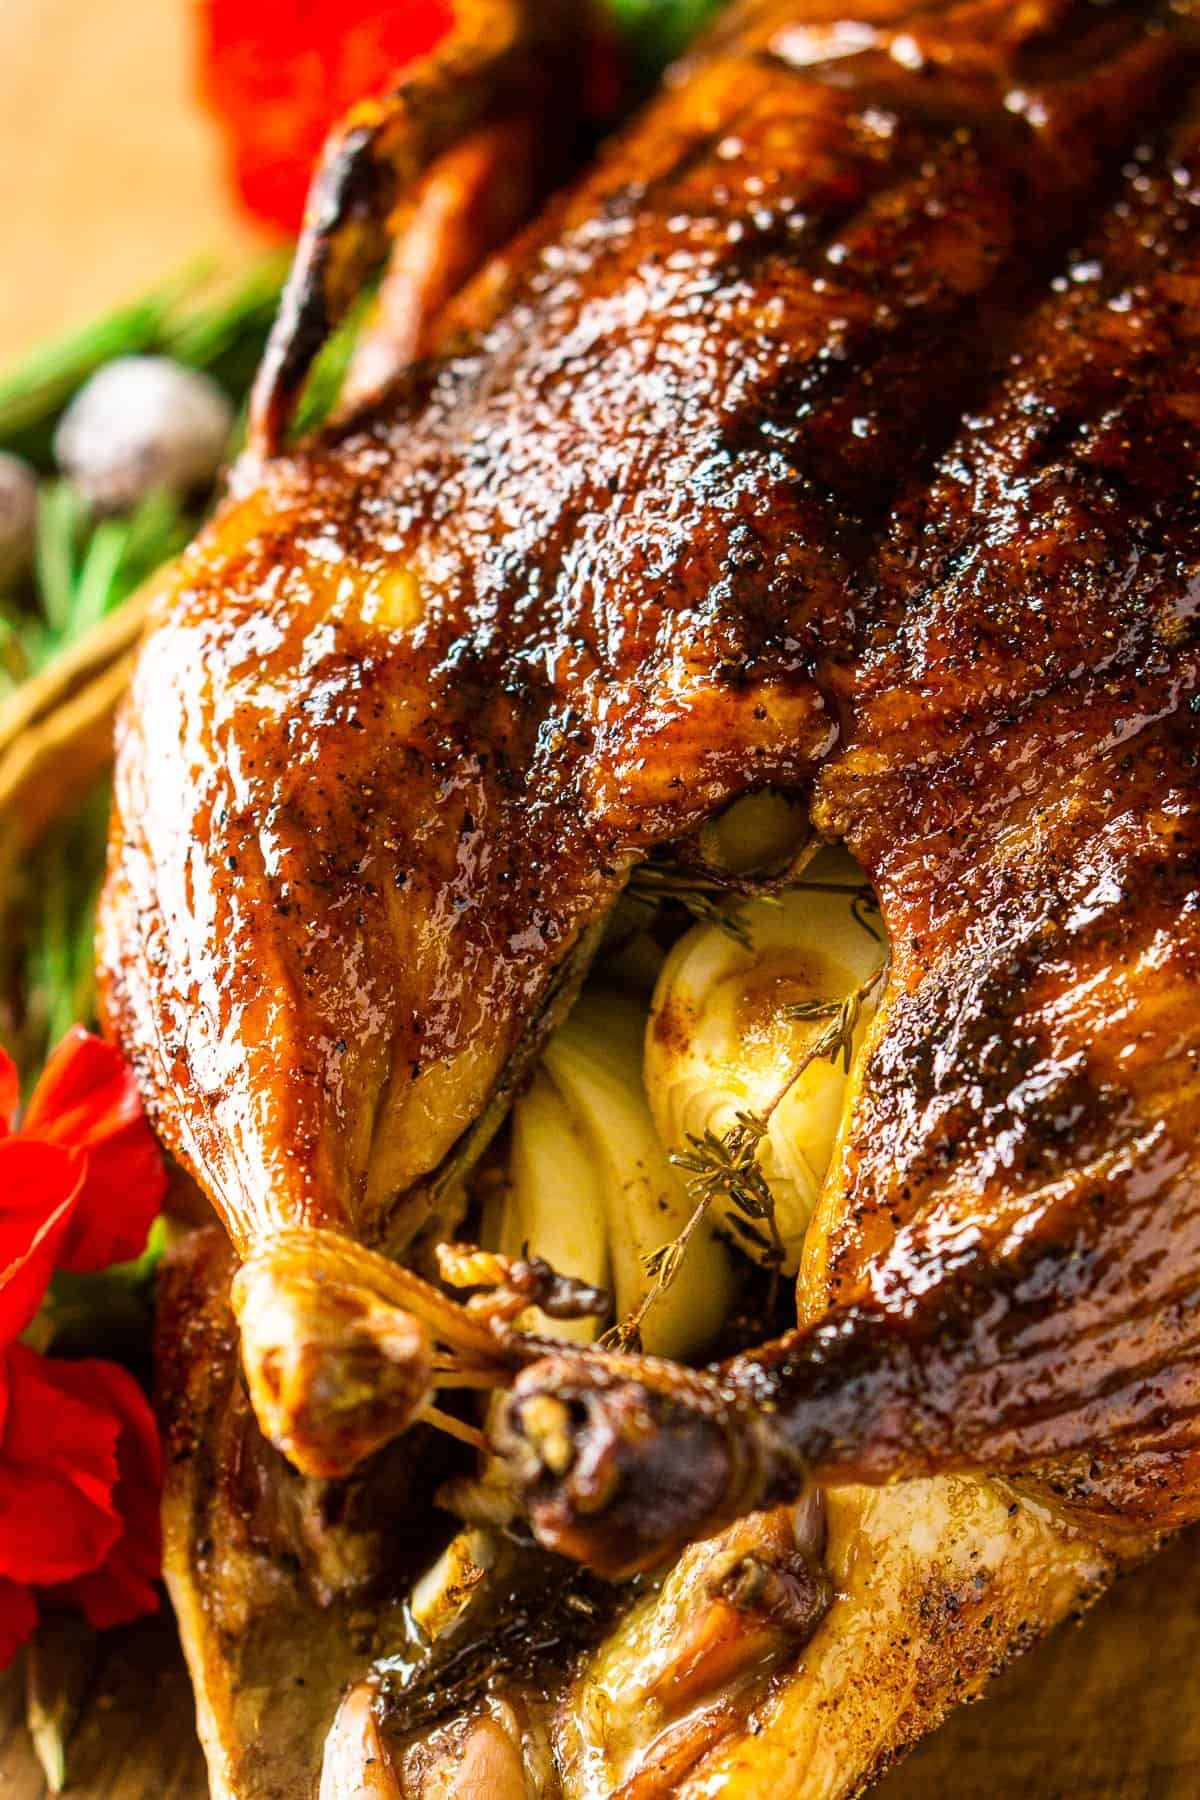 Looking down on the roasted duck from the side with rosemary sprigs in the background.